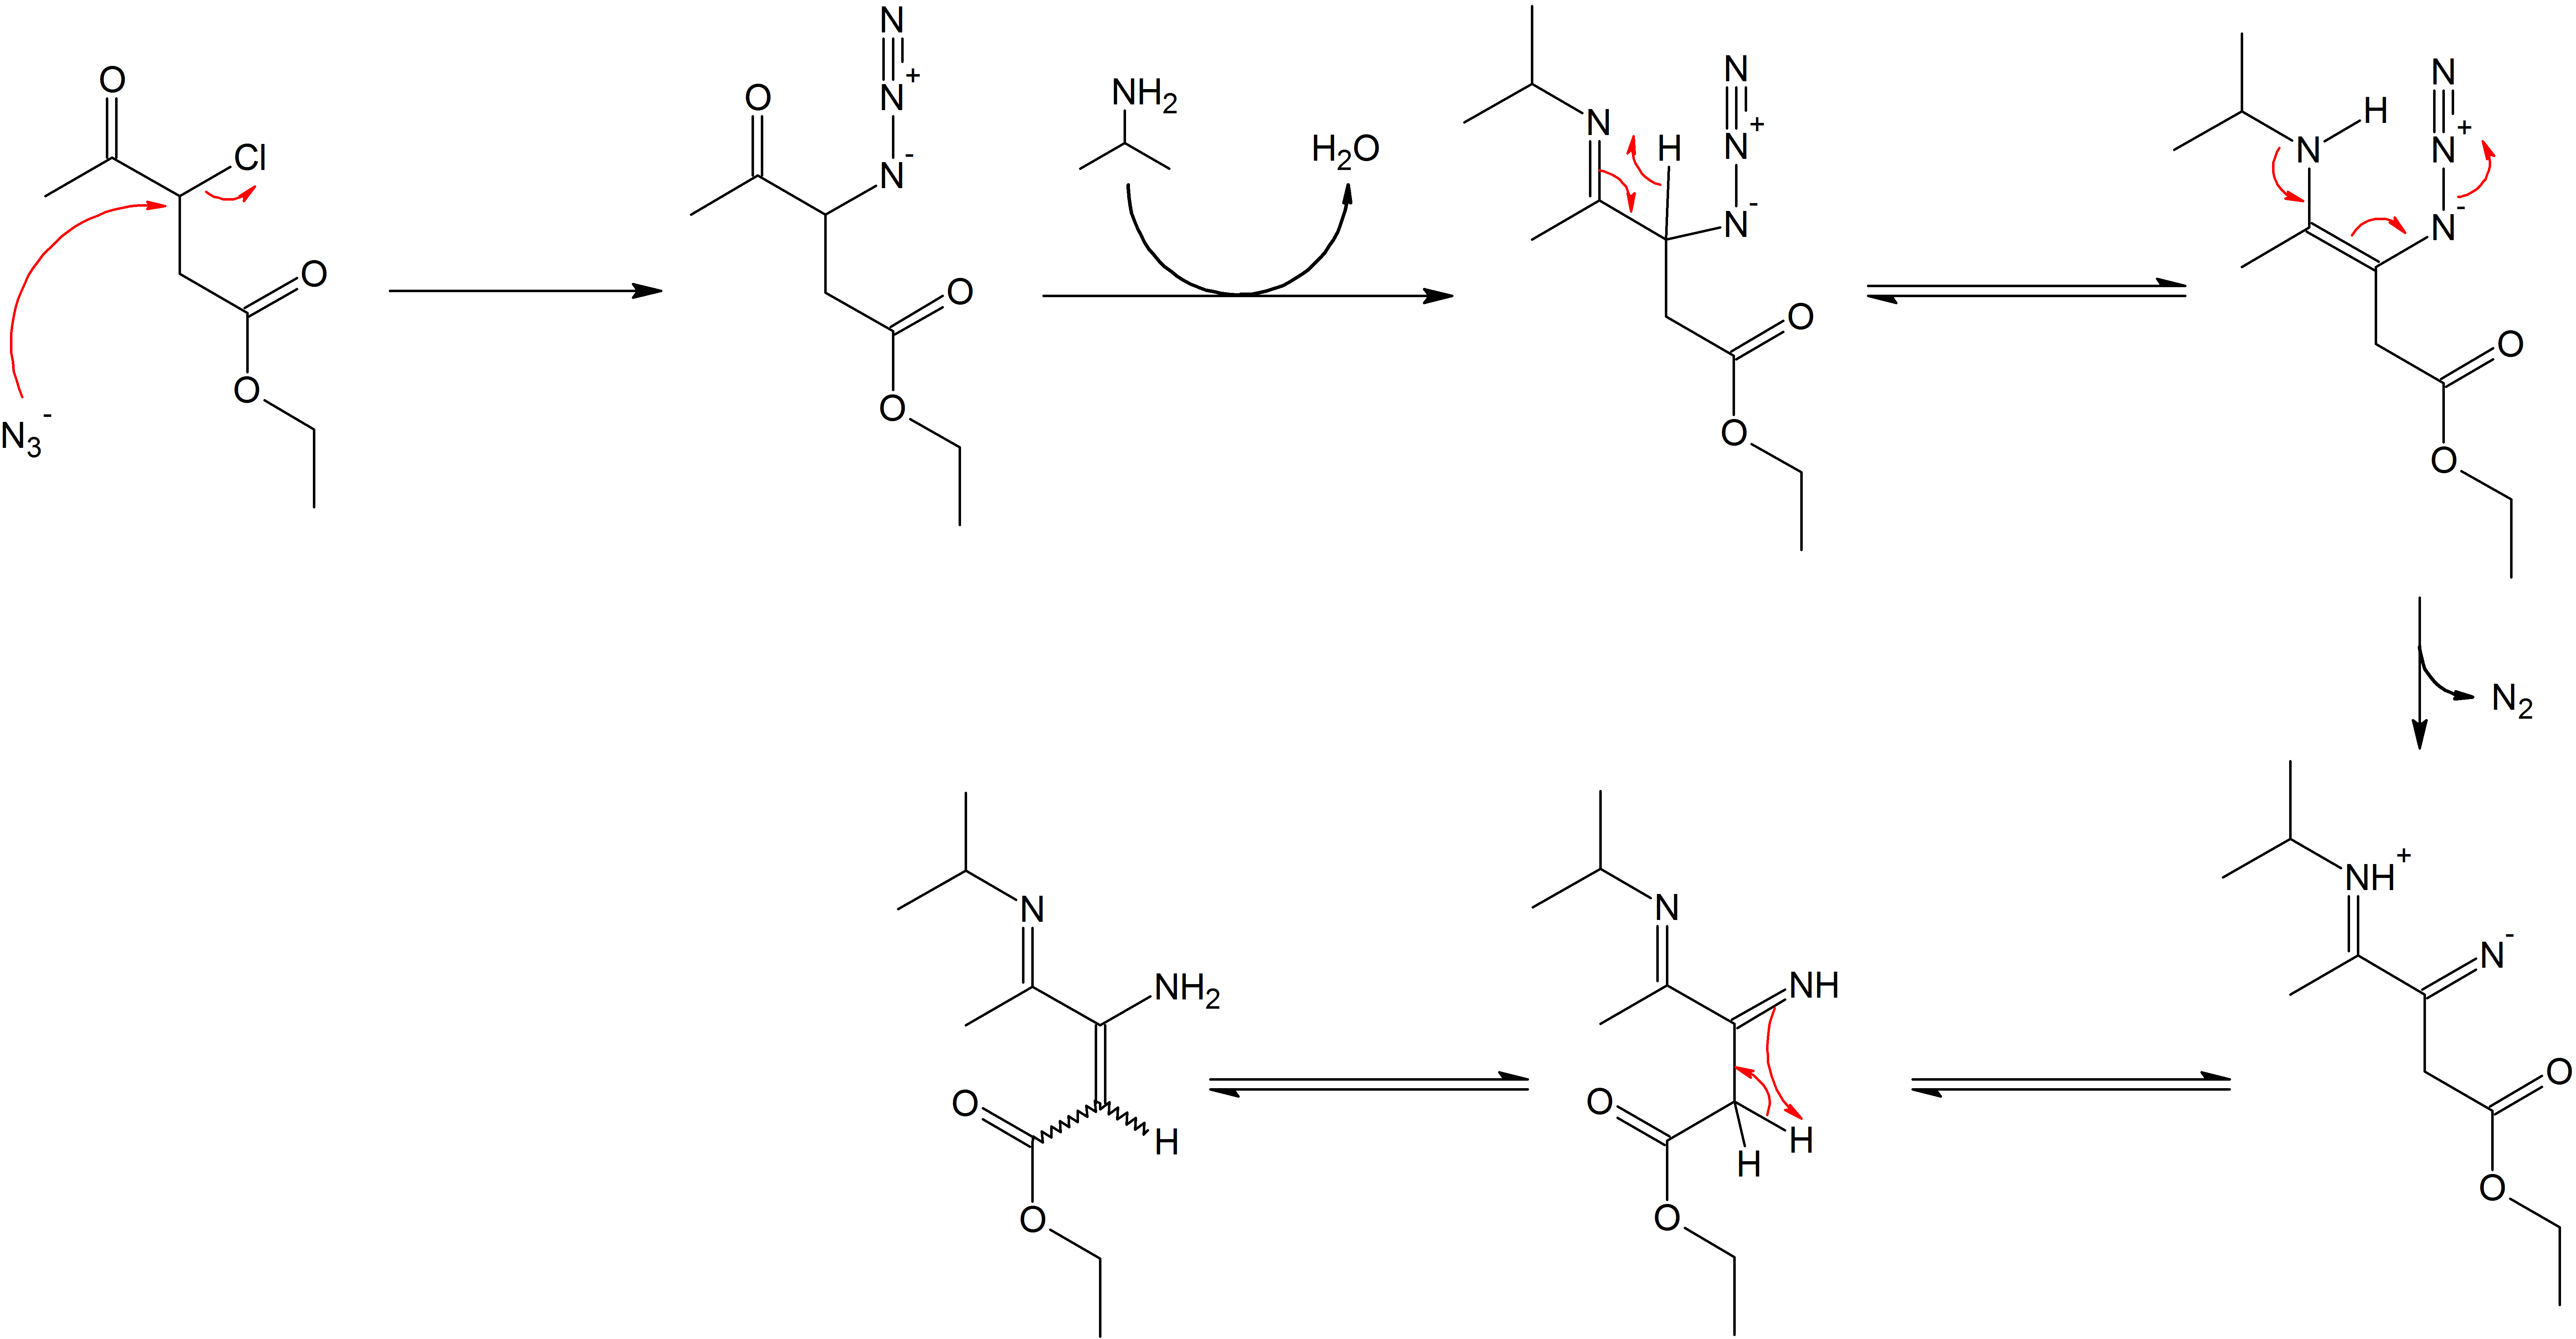 File:Γ-imino-β-enamino esters synthesis example using ... B2 Lewis Structure